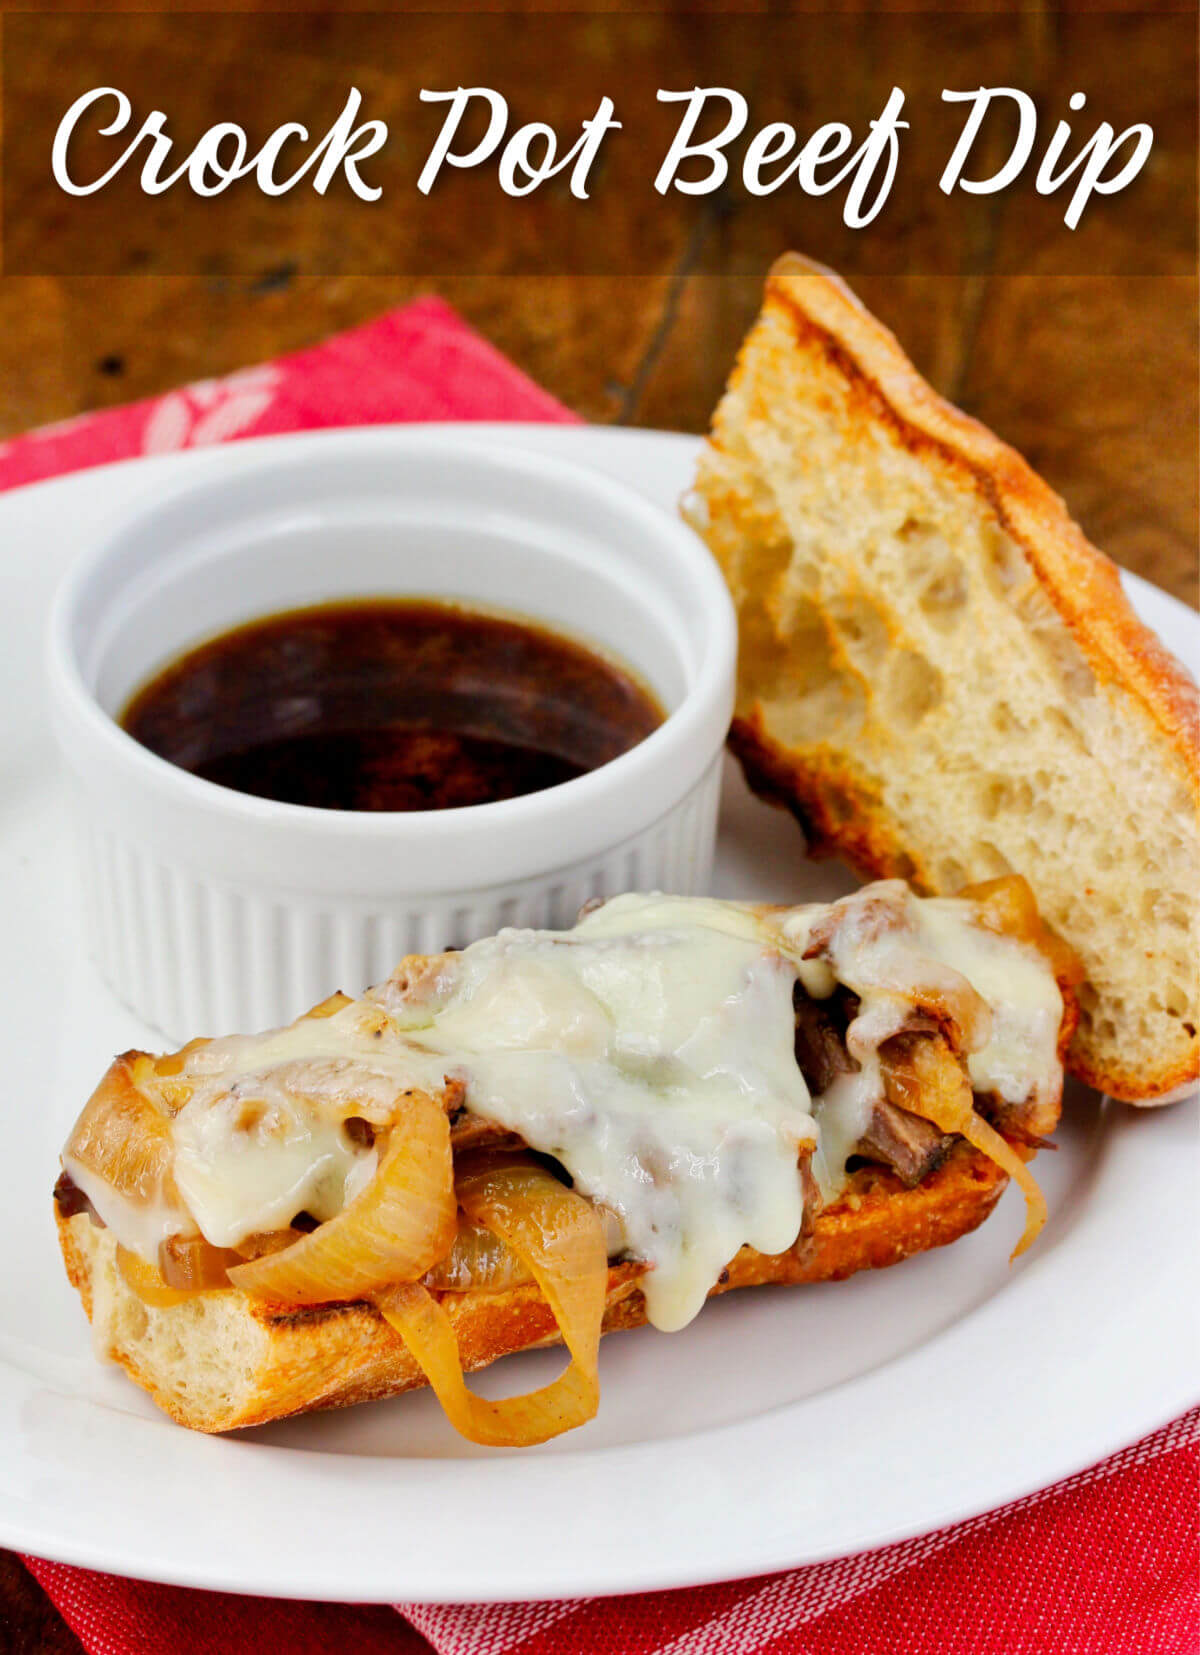 French Dip Sandwich au Jus on a plate.